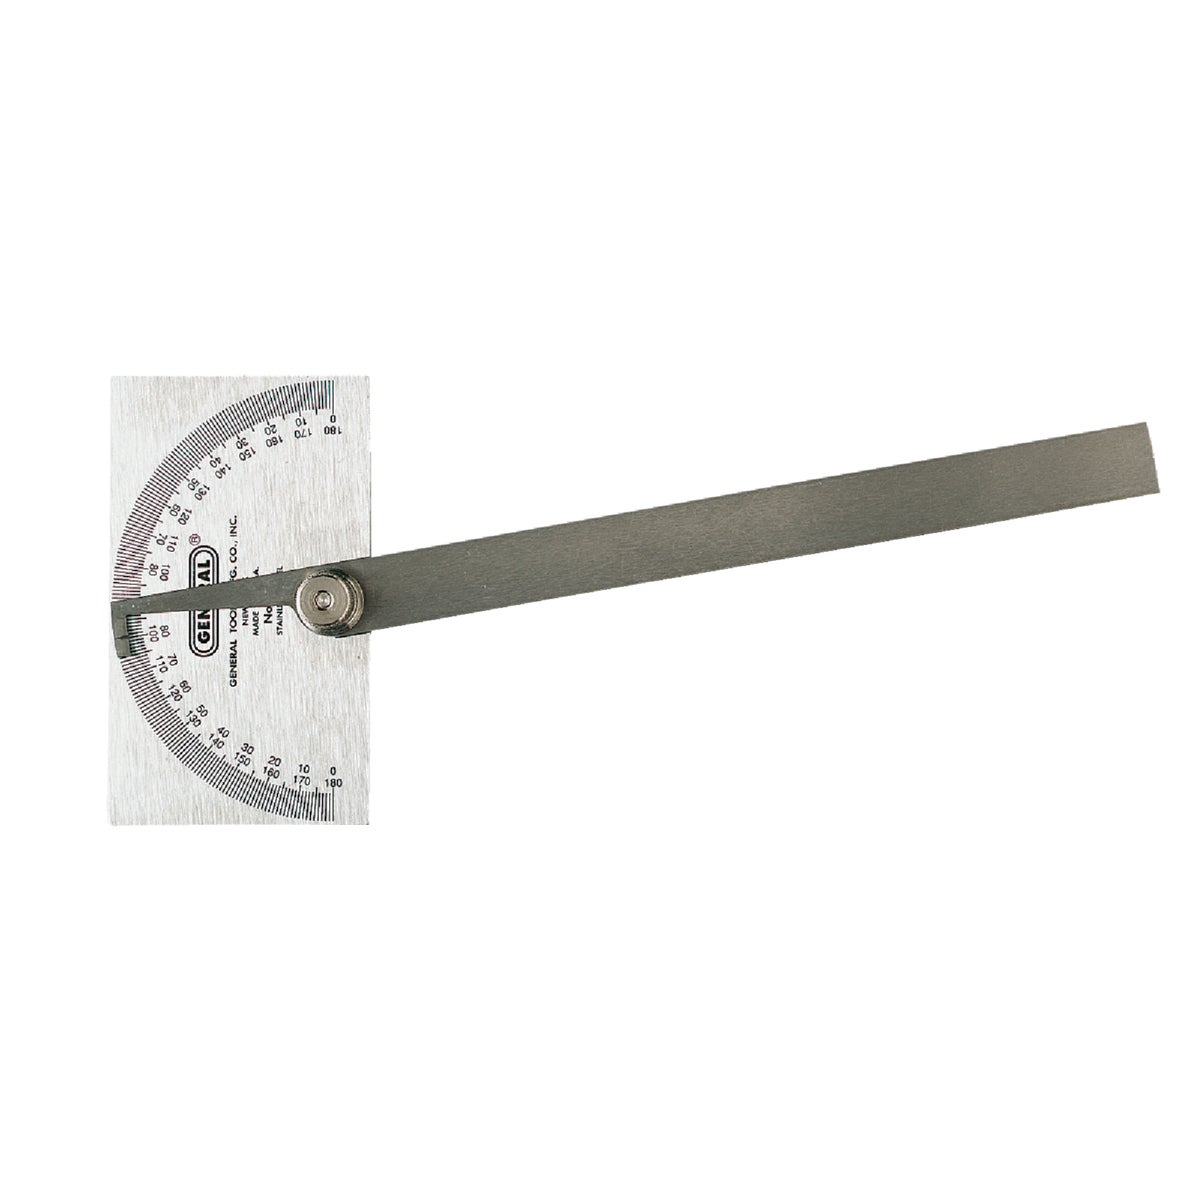 "6"" STEEL PROTRACTOR - 17 by Gen Tools Mfg"